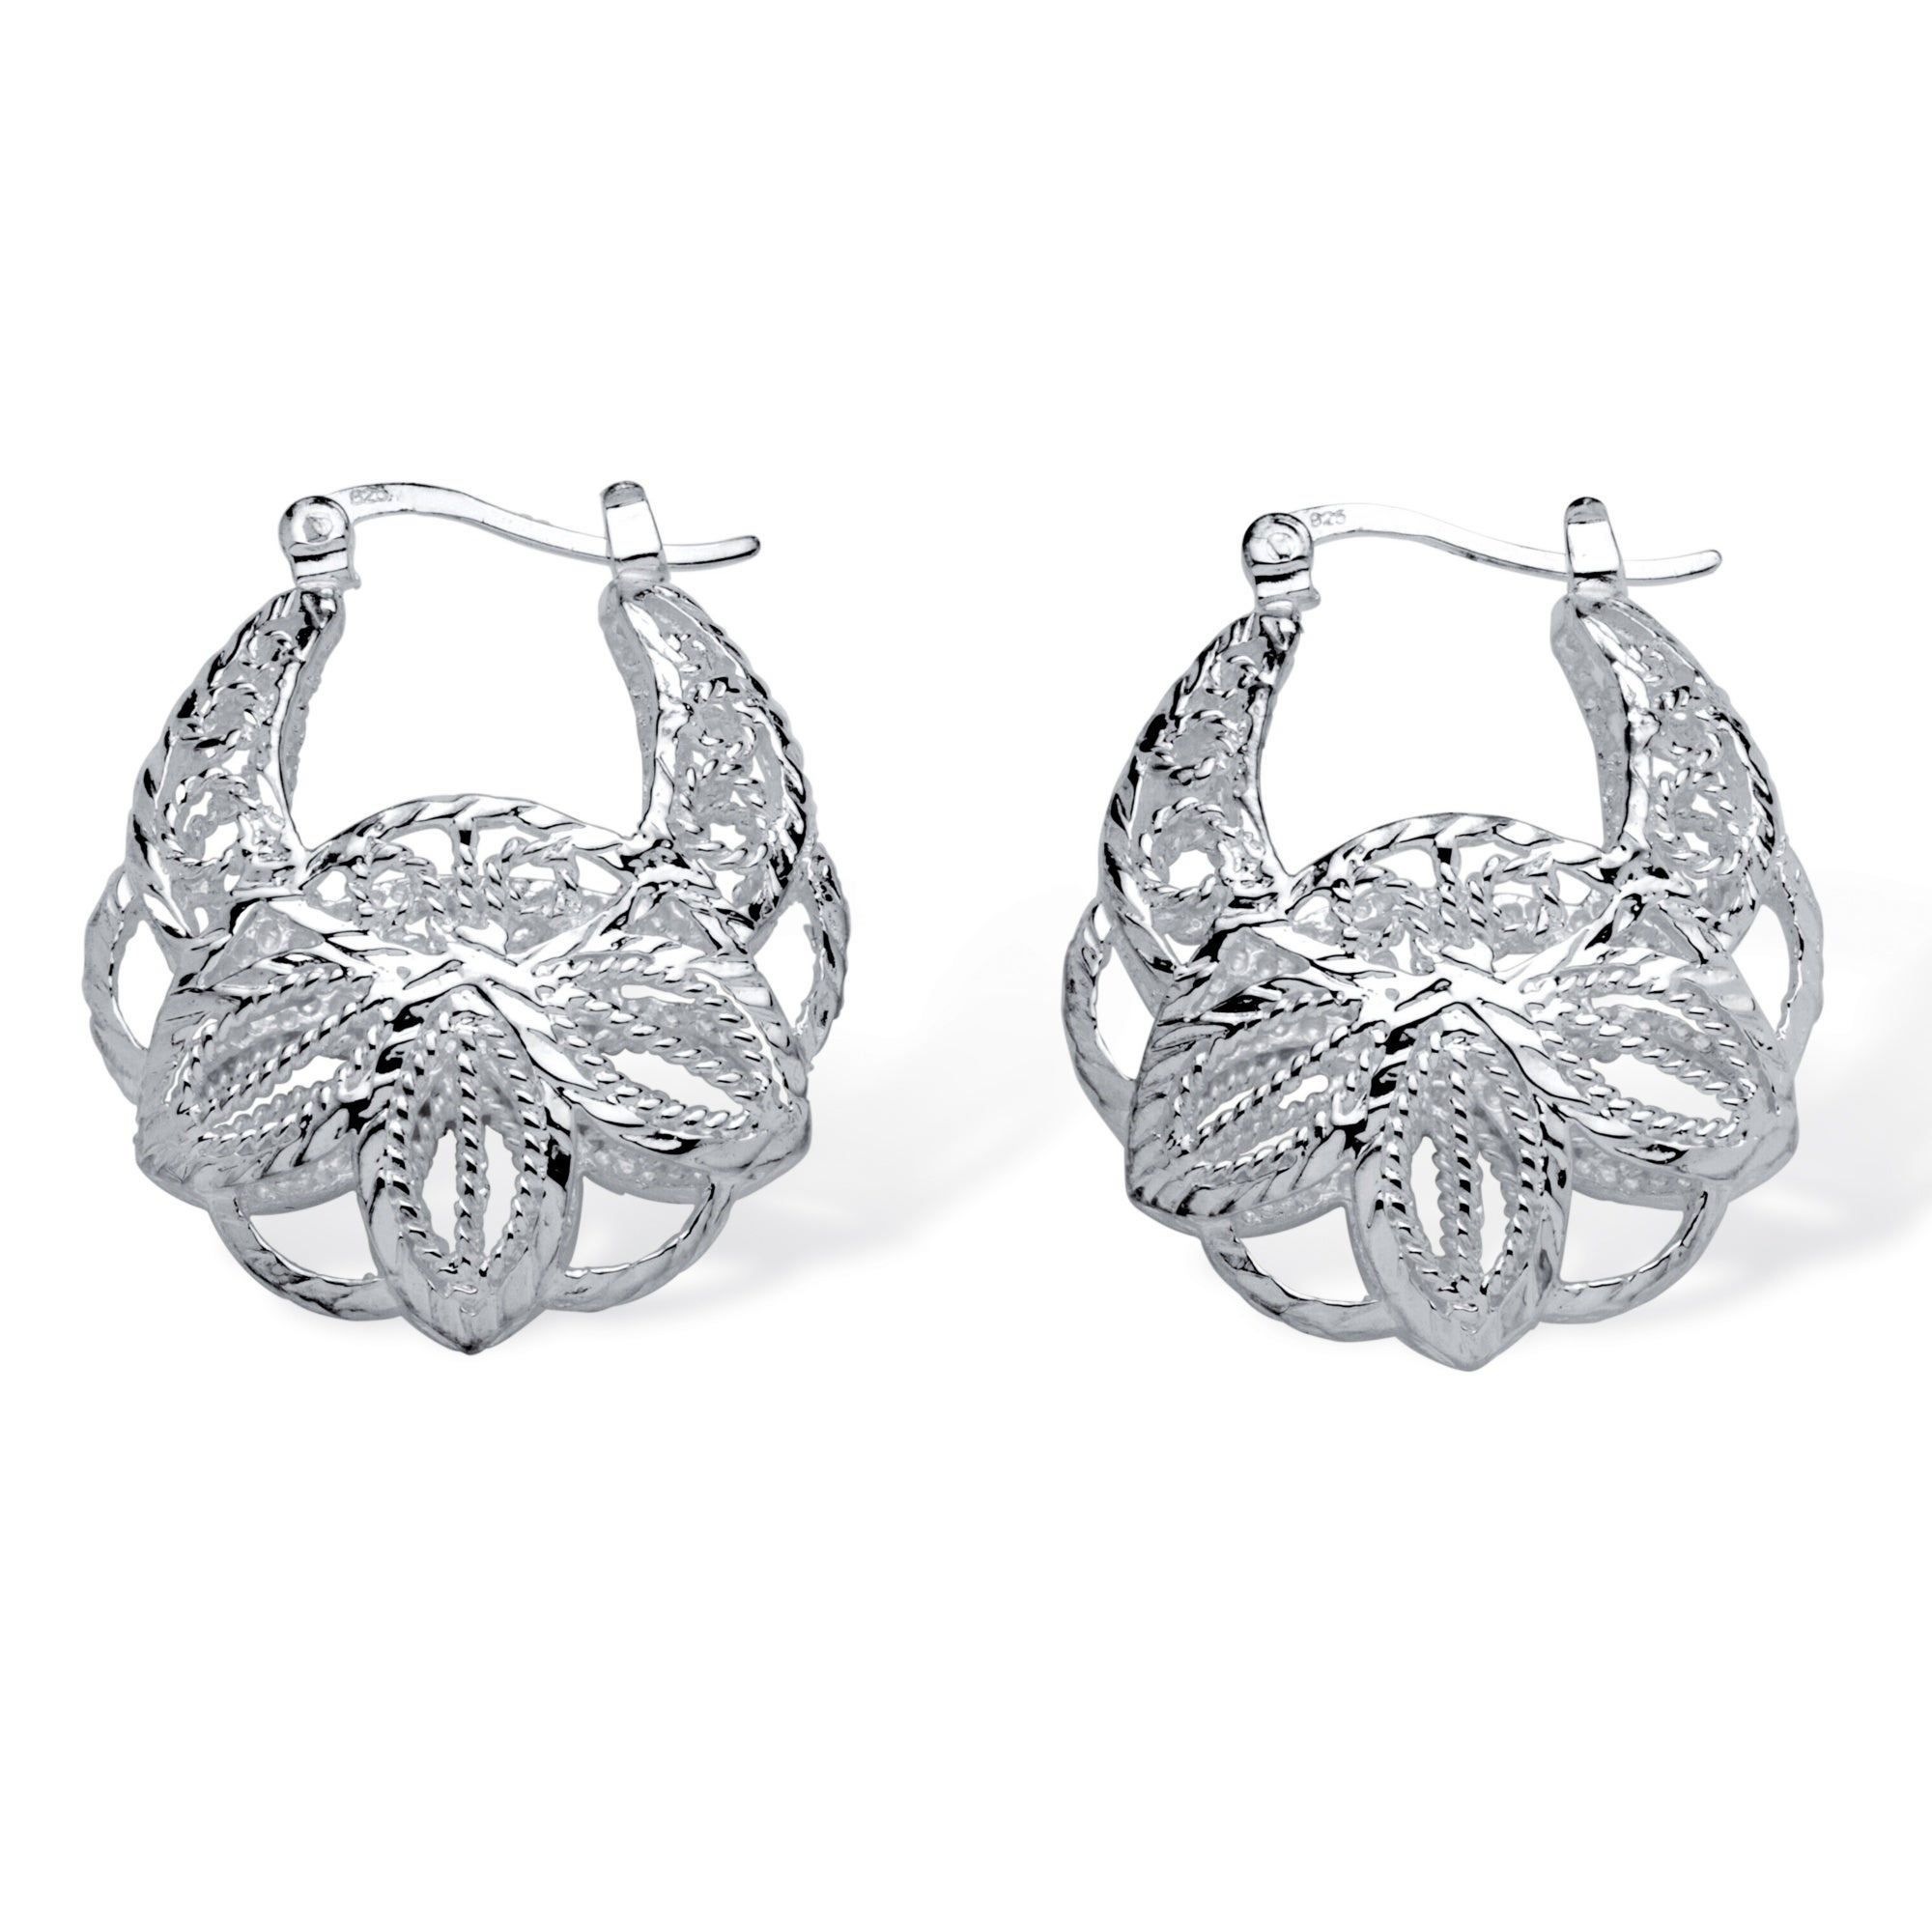 PalmBeach Jewelry PalmBeach .925 Sterling Silver Filigree Leaf Hoop Earrings Tailored